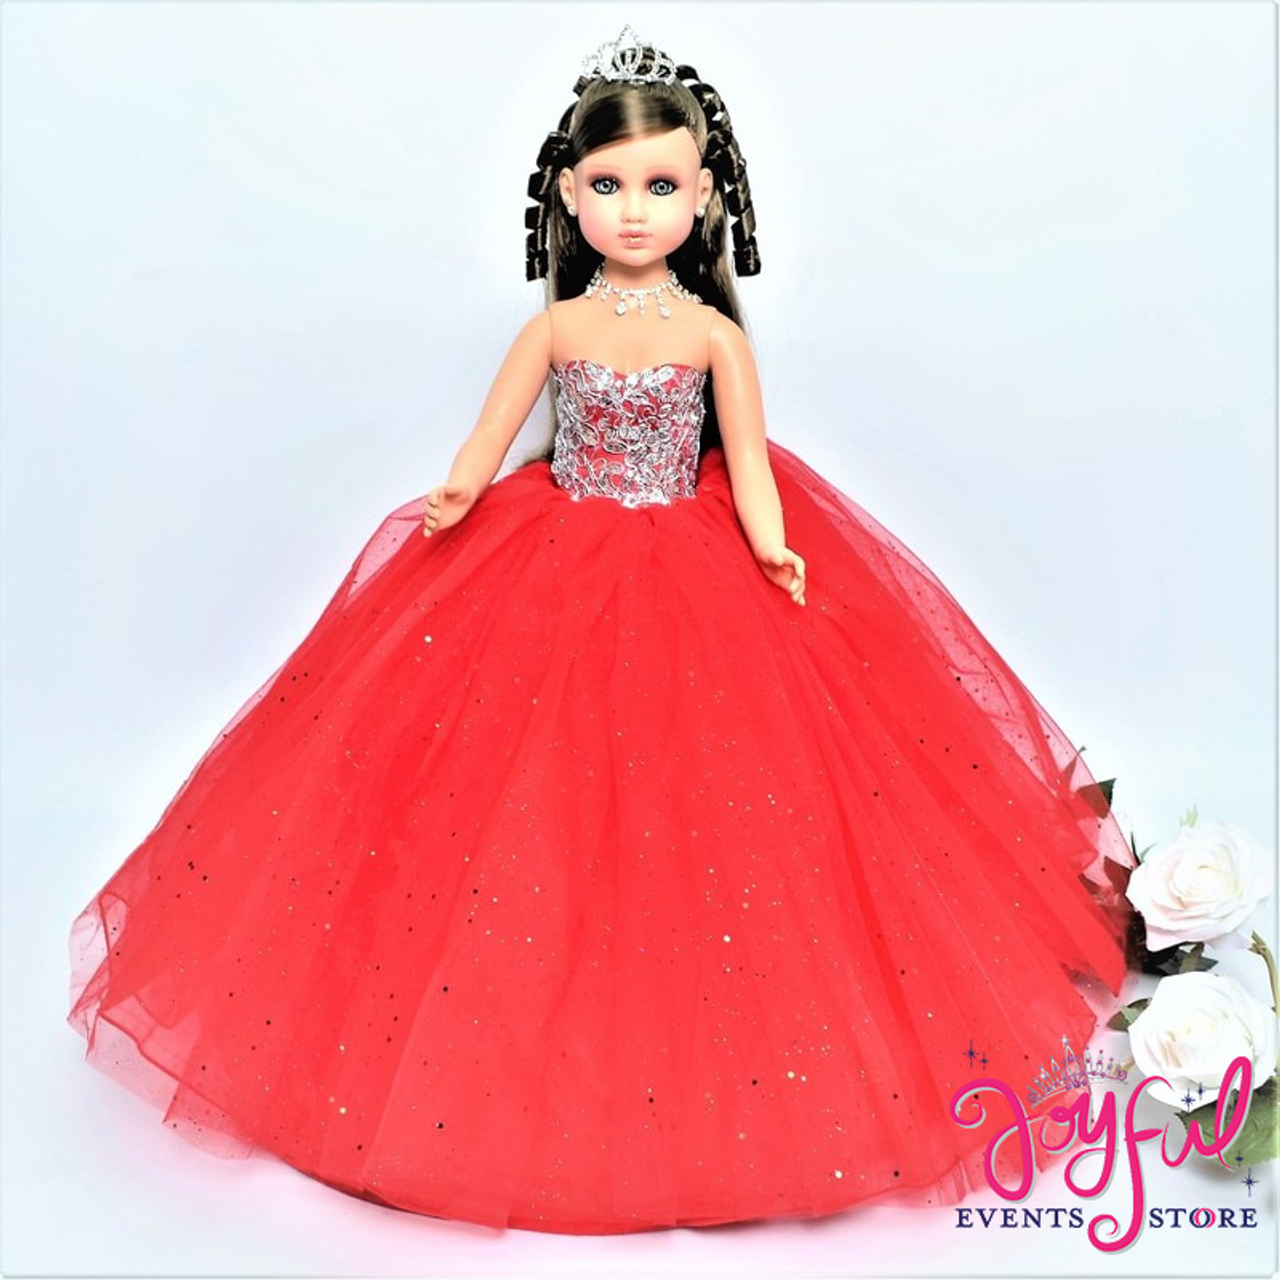 98101a7325a Last quinceanera dolls or ultima muneca for your sweet fifteen or  quinceanera